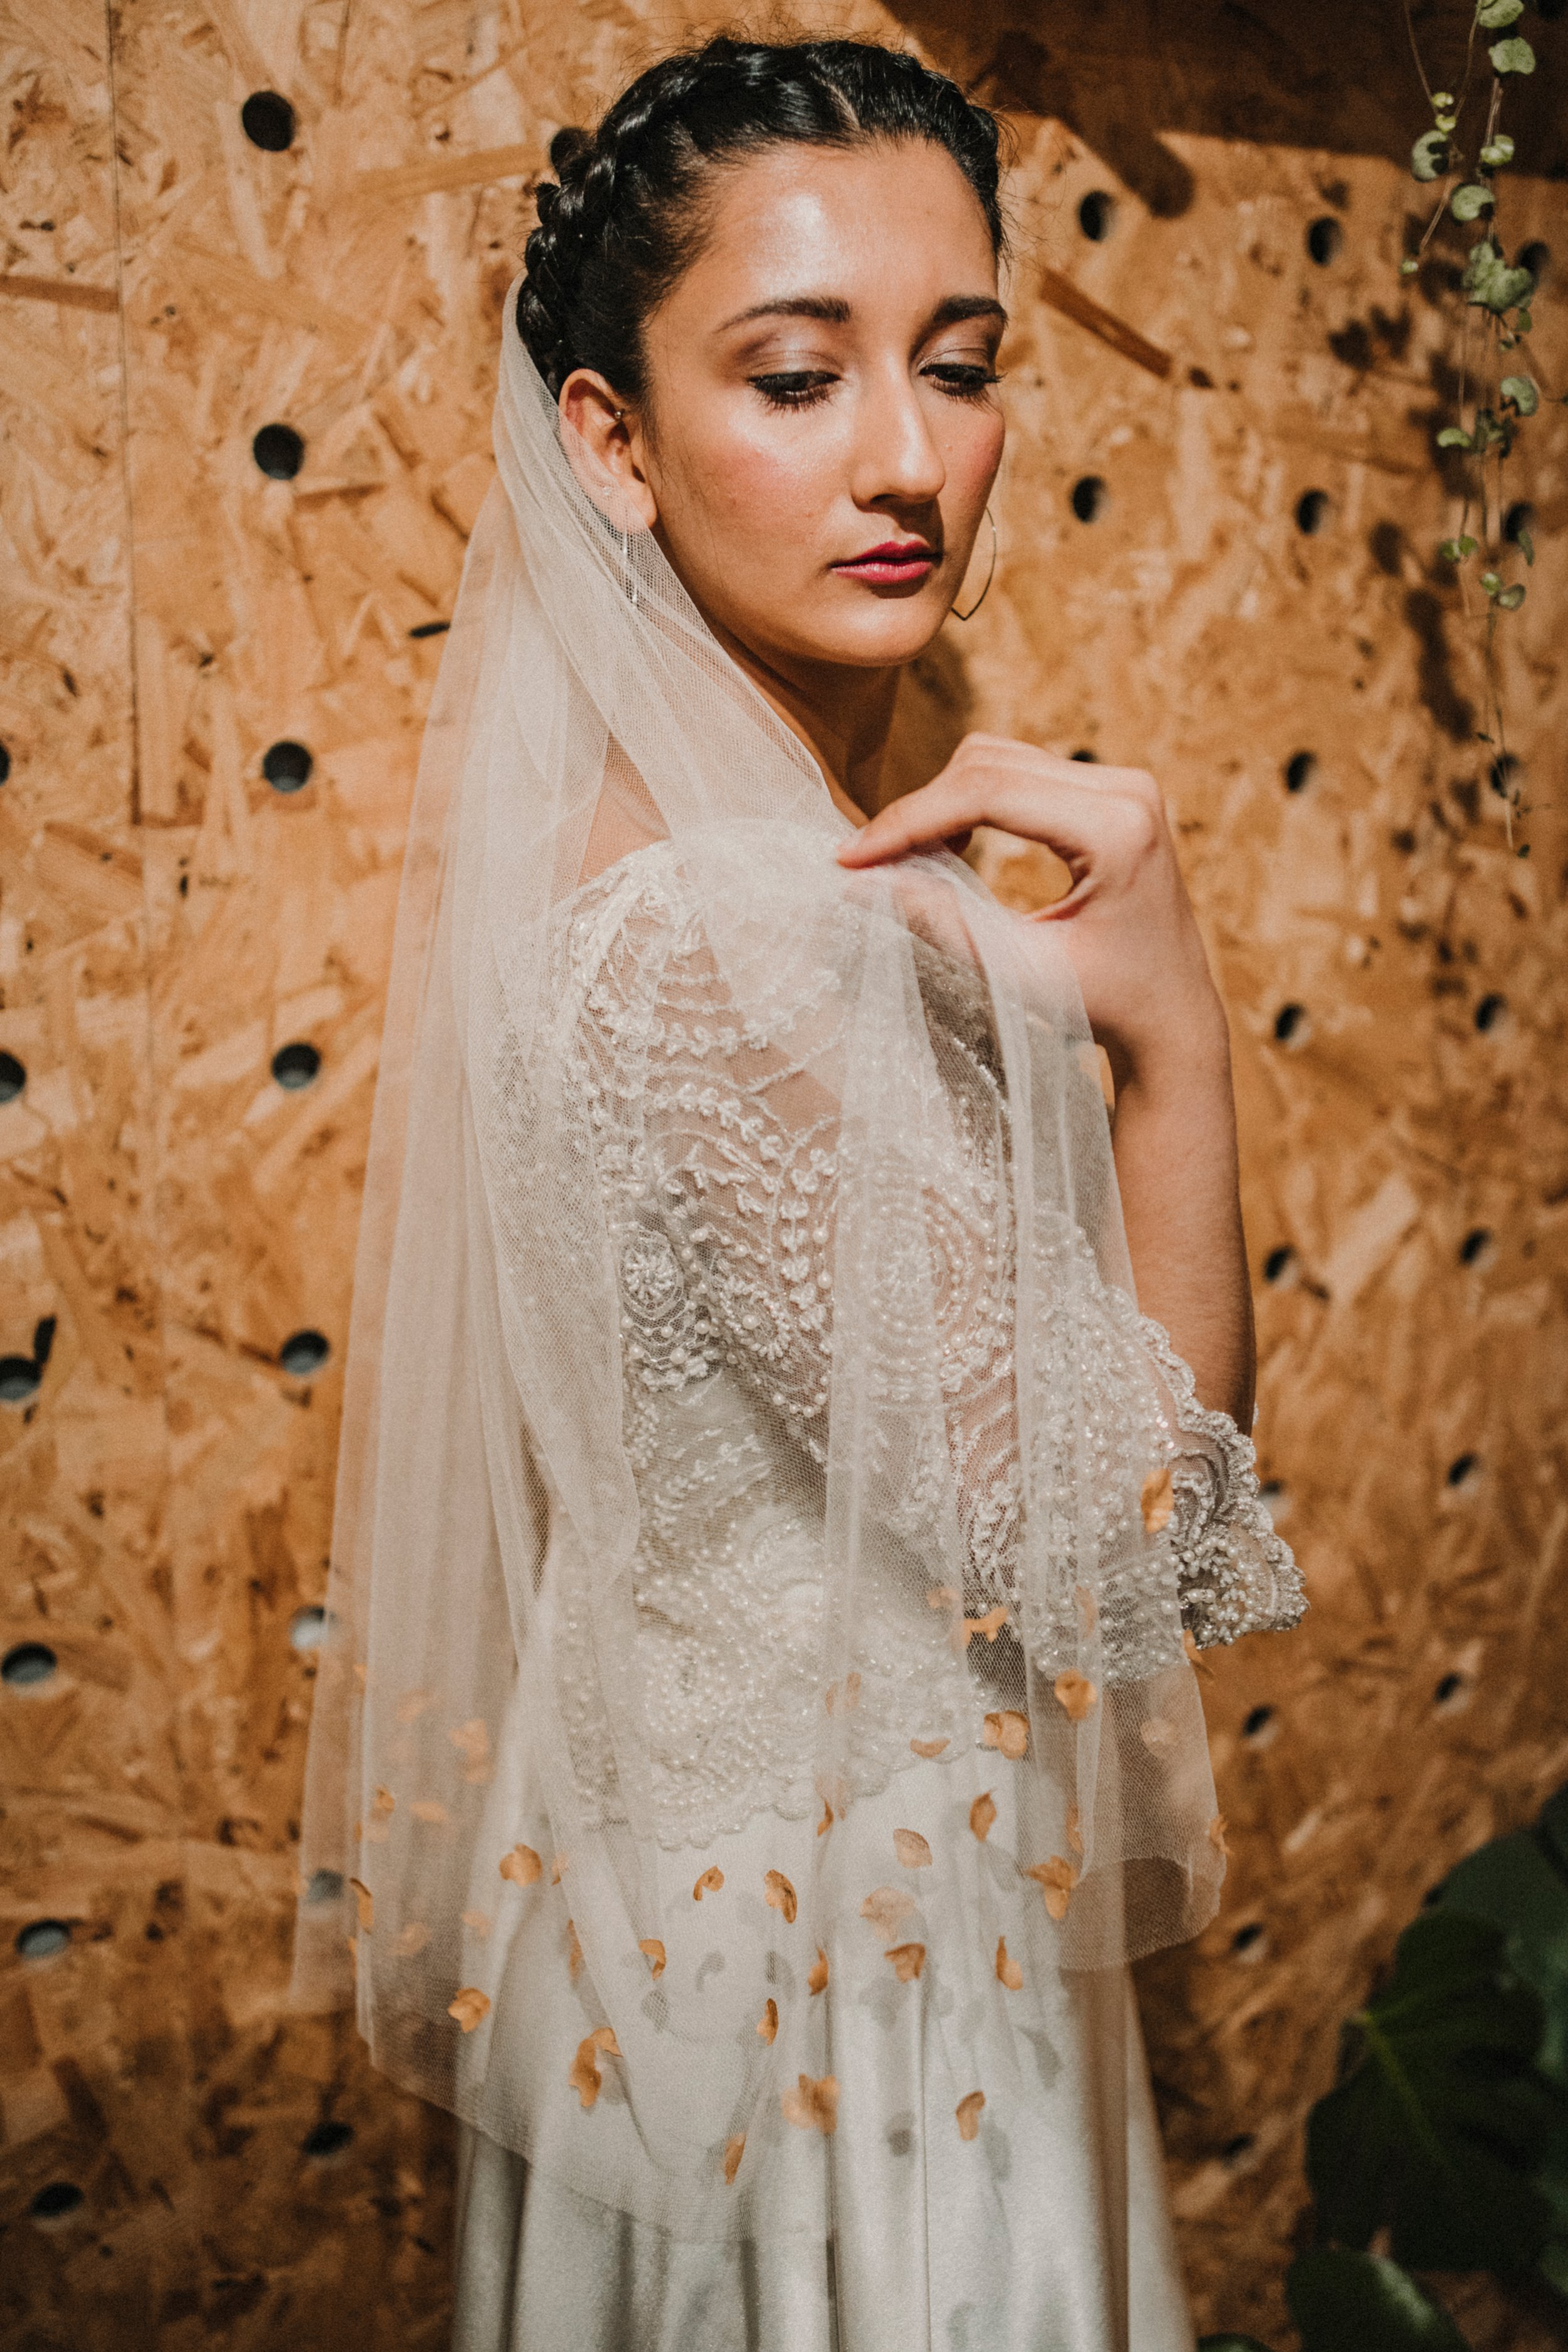 Claire Hill Designs Contemporary Modern Wedding Accessories and Headpieces Fashion Bride 00004.jpg